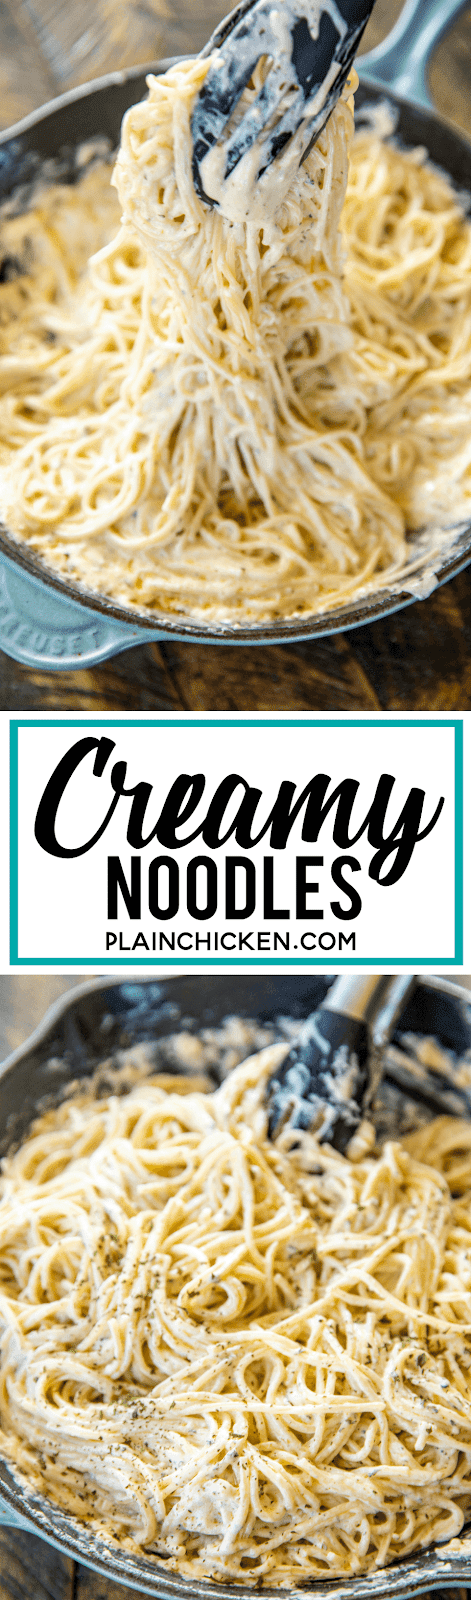 Creamy Noodles - a quick and easy side dish! Ready to eat in about 15 minutes! Spaghetti, cream cheese, milk, parmesan, garlic, butter, cajun seasoning, onion, and parsley. Goes with everything! Steak, chicken, pork. Great side dish or meatless main dish! #pasta #sidedish